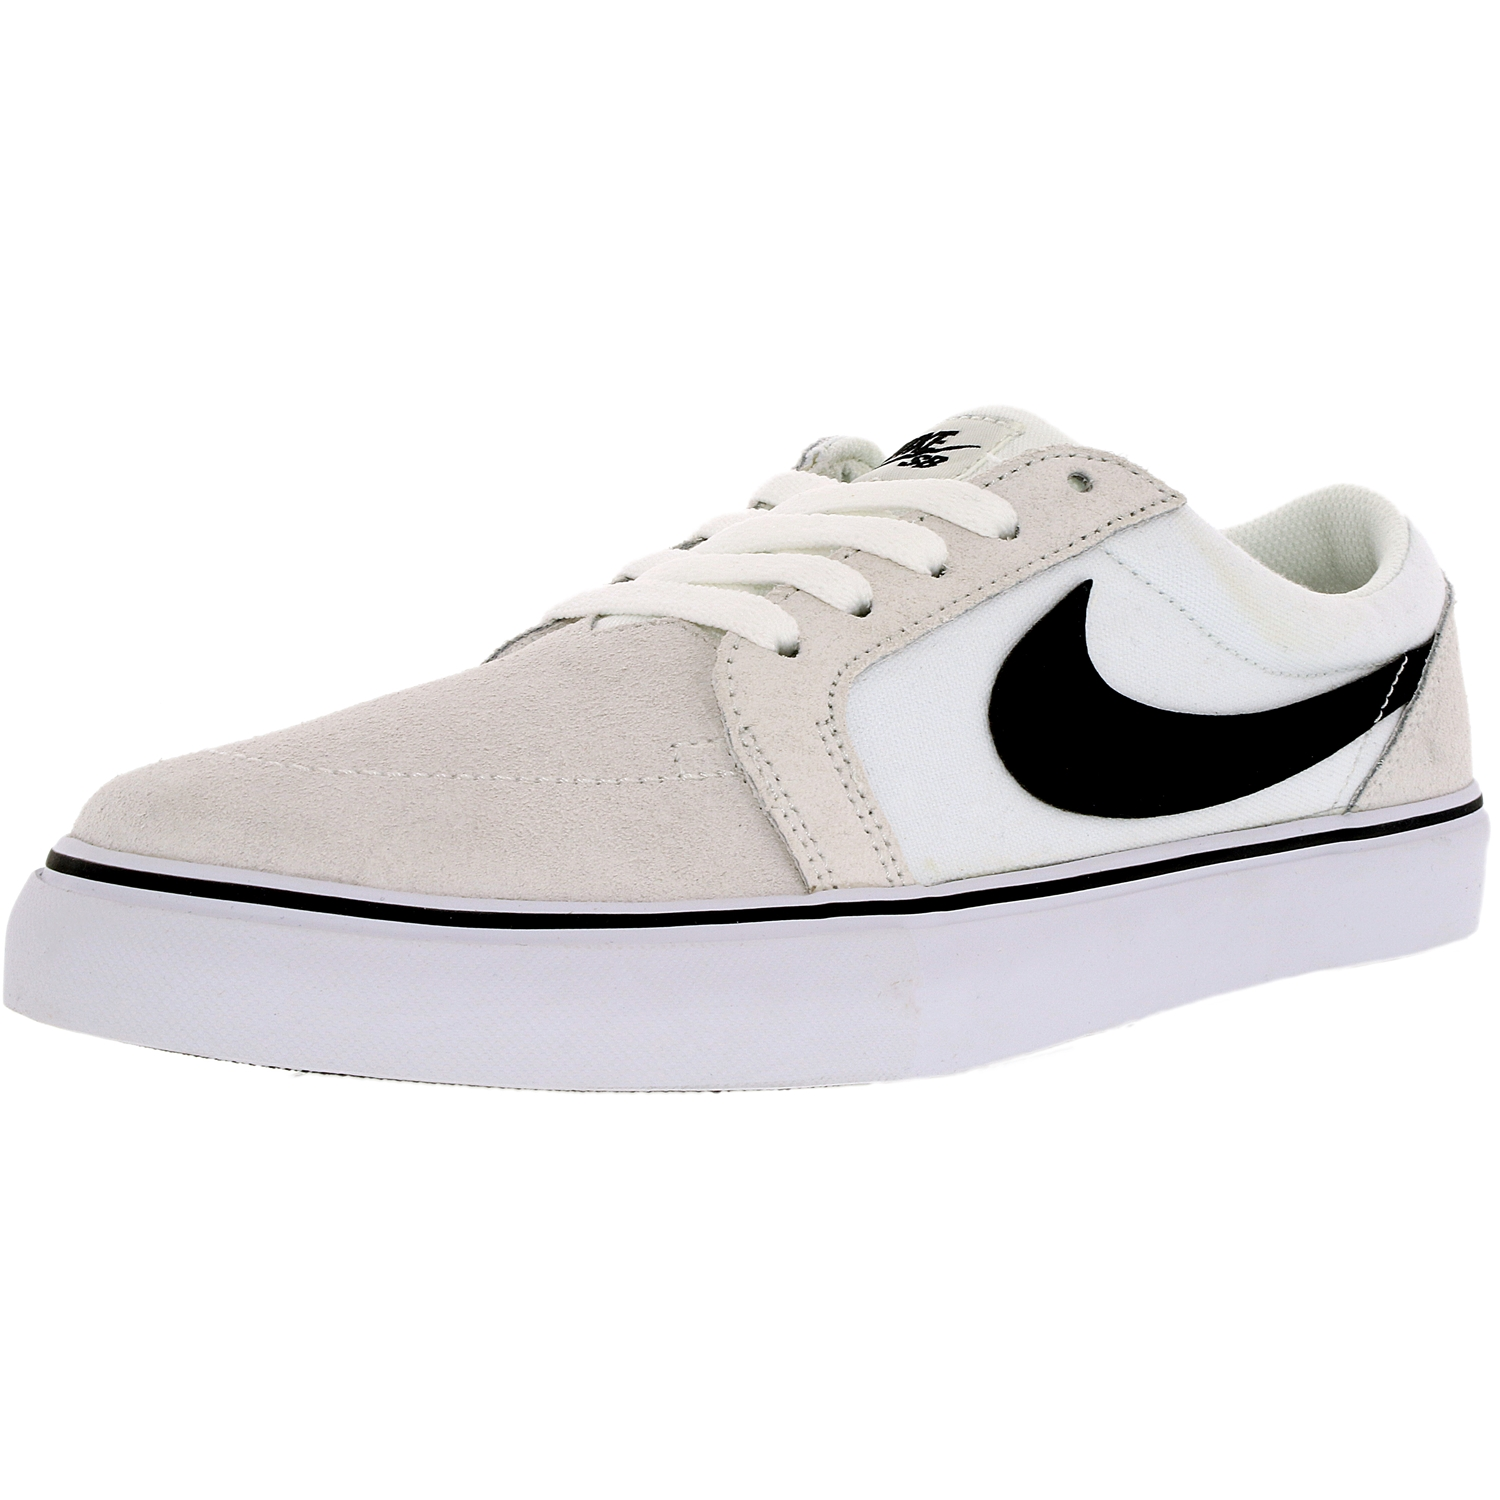 Nike Men's Sb Satire Above the Knee Synthetic Fashion Sne...